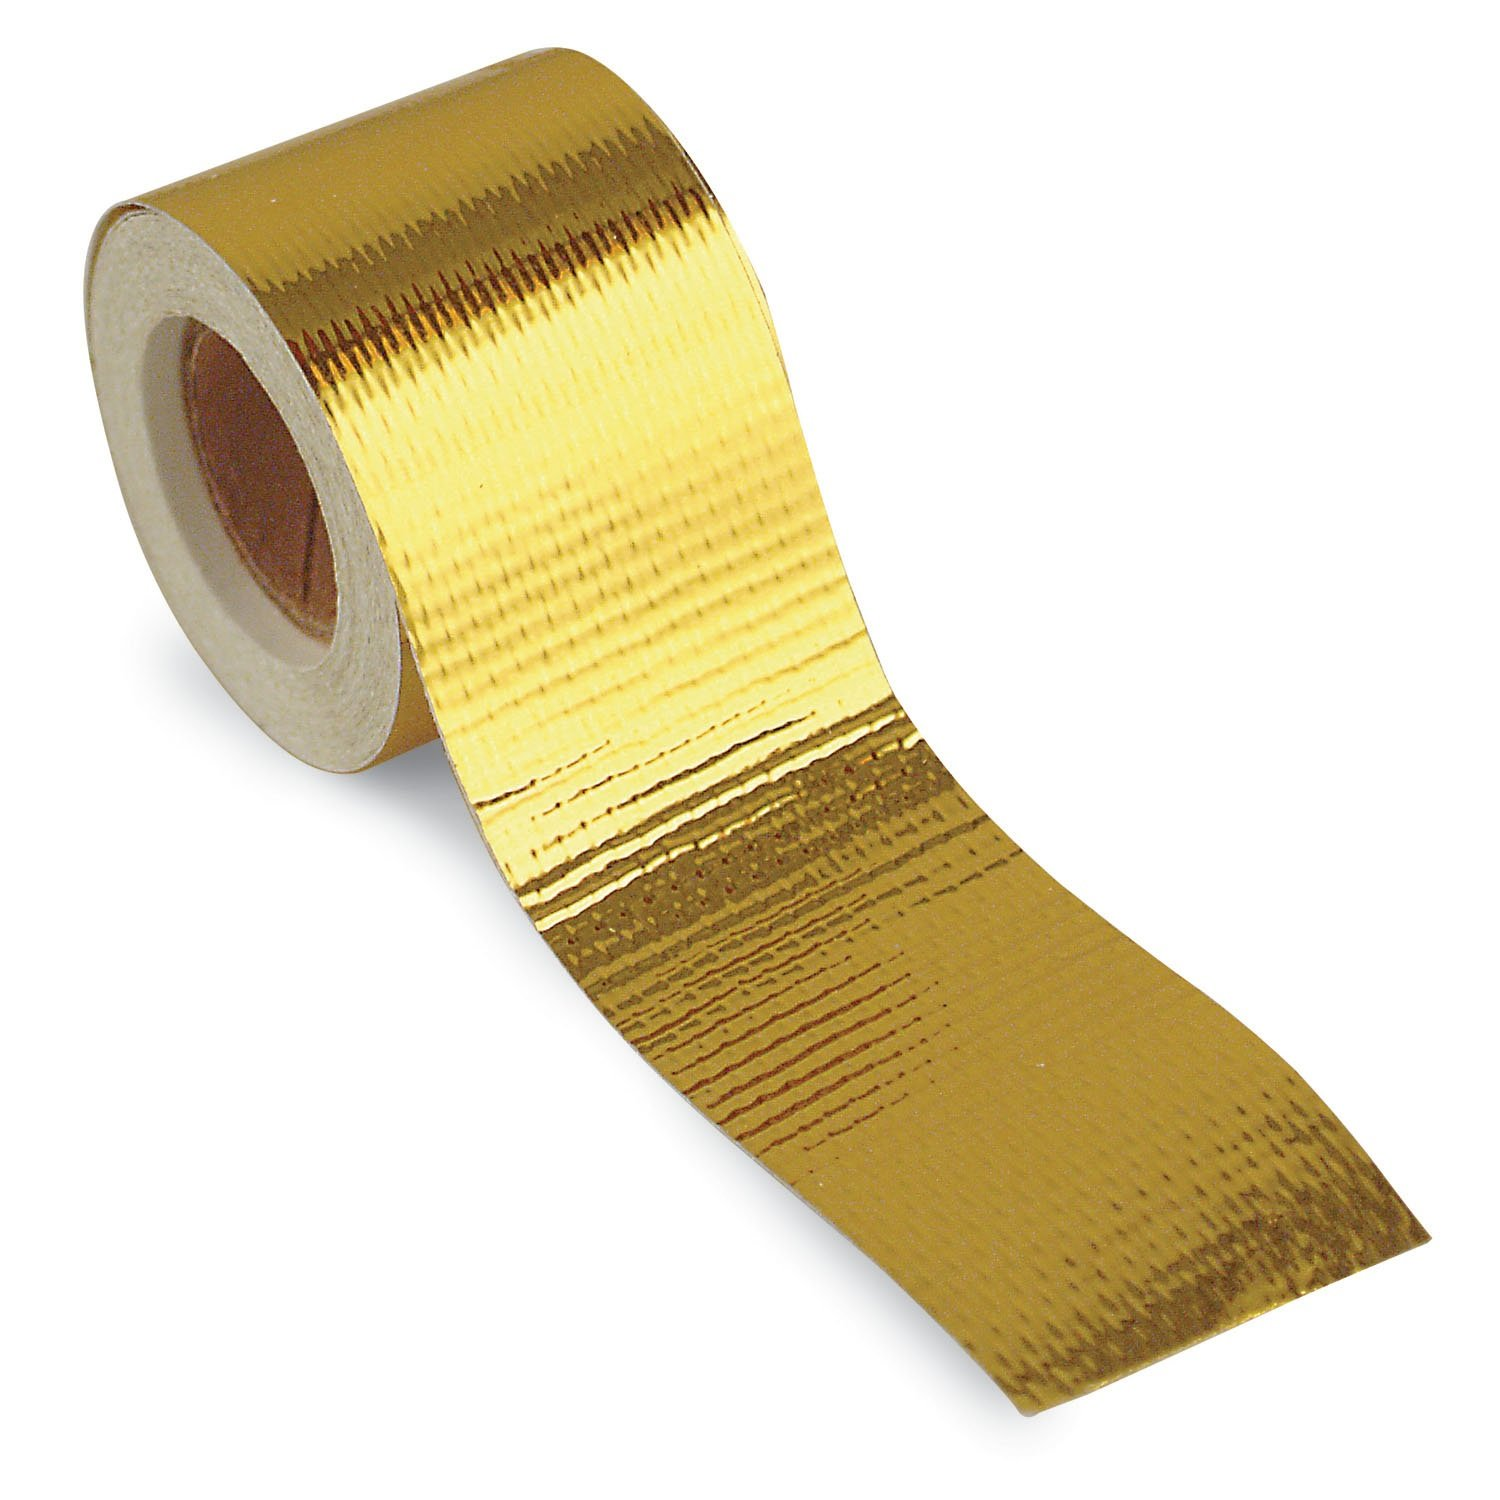 Design Engineering 010394 Reflect-A-GOLD High-Temperature Heat Reflective Adhesive Backed Roll, 1.5'' x 15' Roll